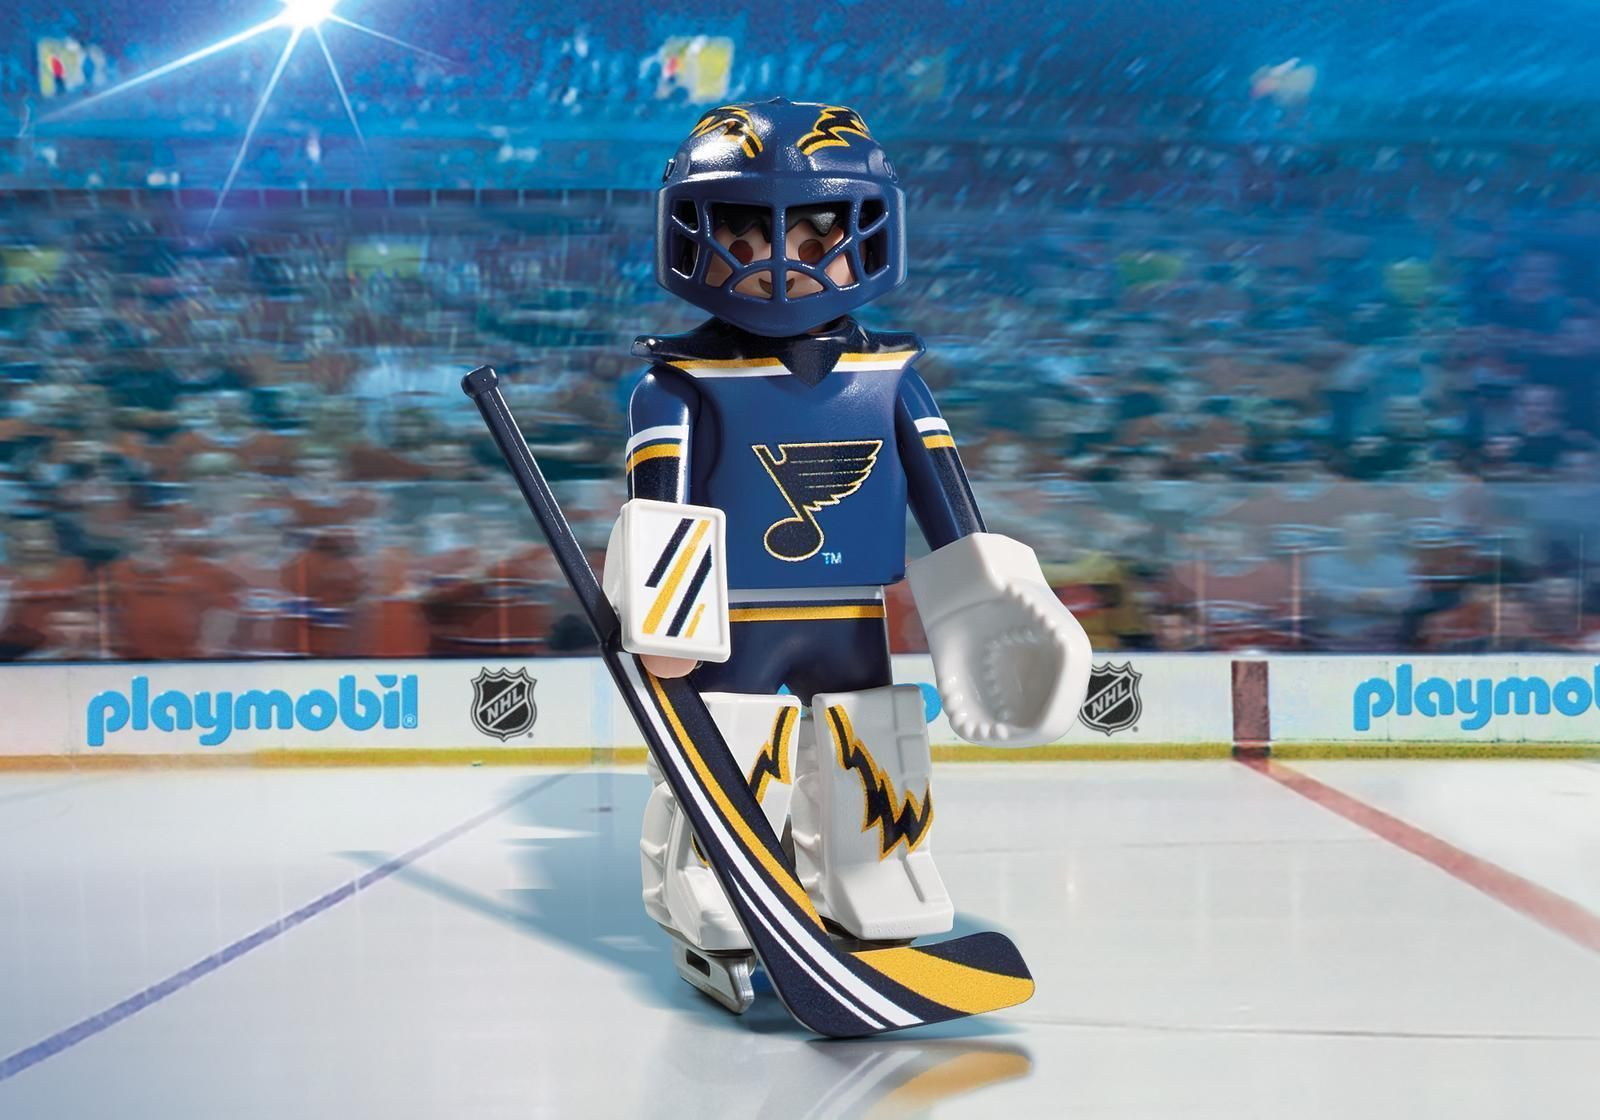 $8.99 - Playmobil 9183 Nhl St. Louis Blues Goalie - Factory Sealed #ebay #Collectibles